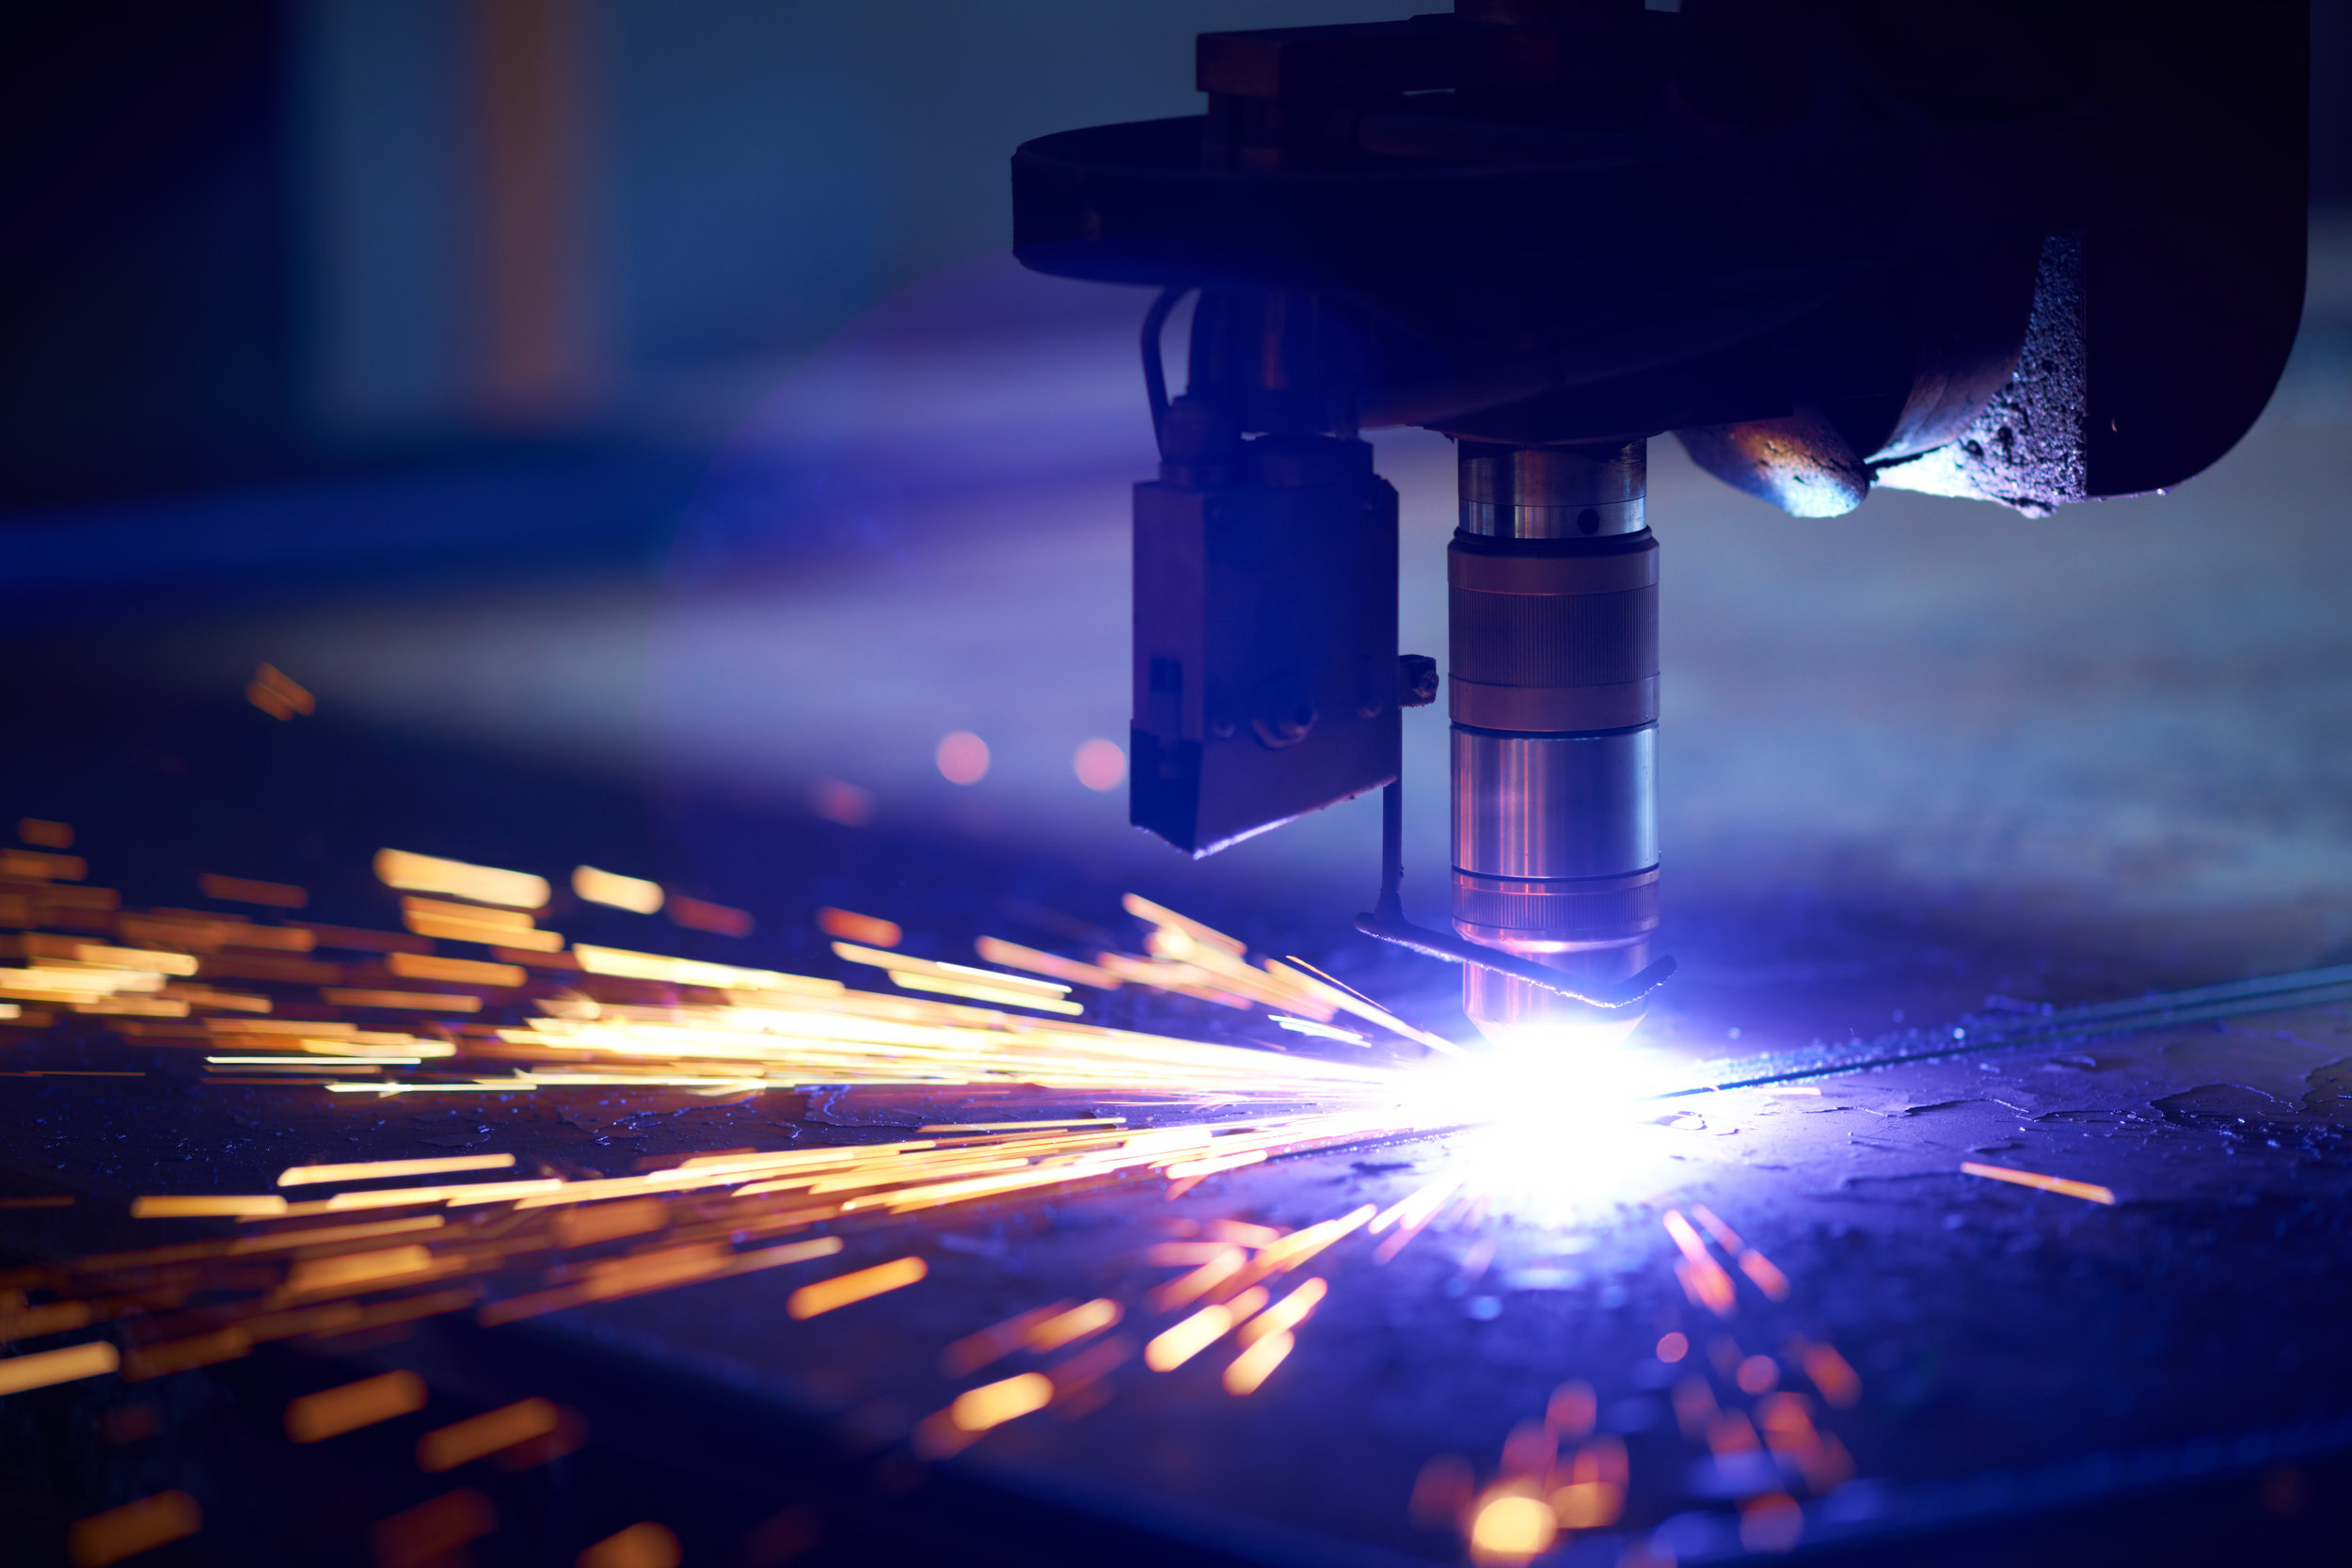 close up manufacture sparks iStock-184609027.jpg